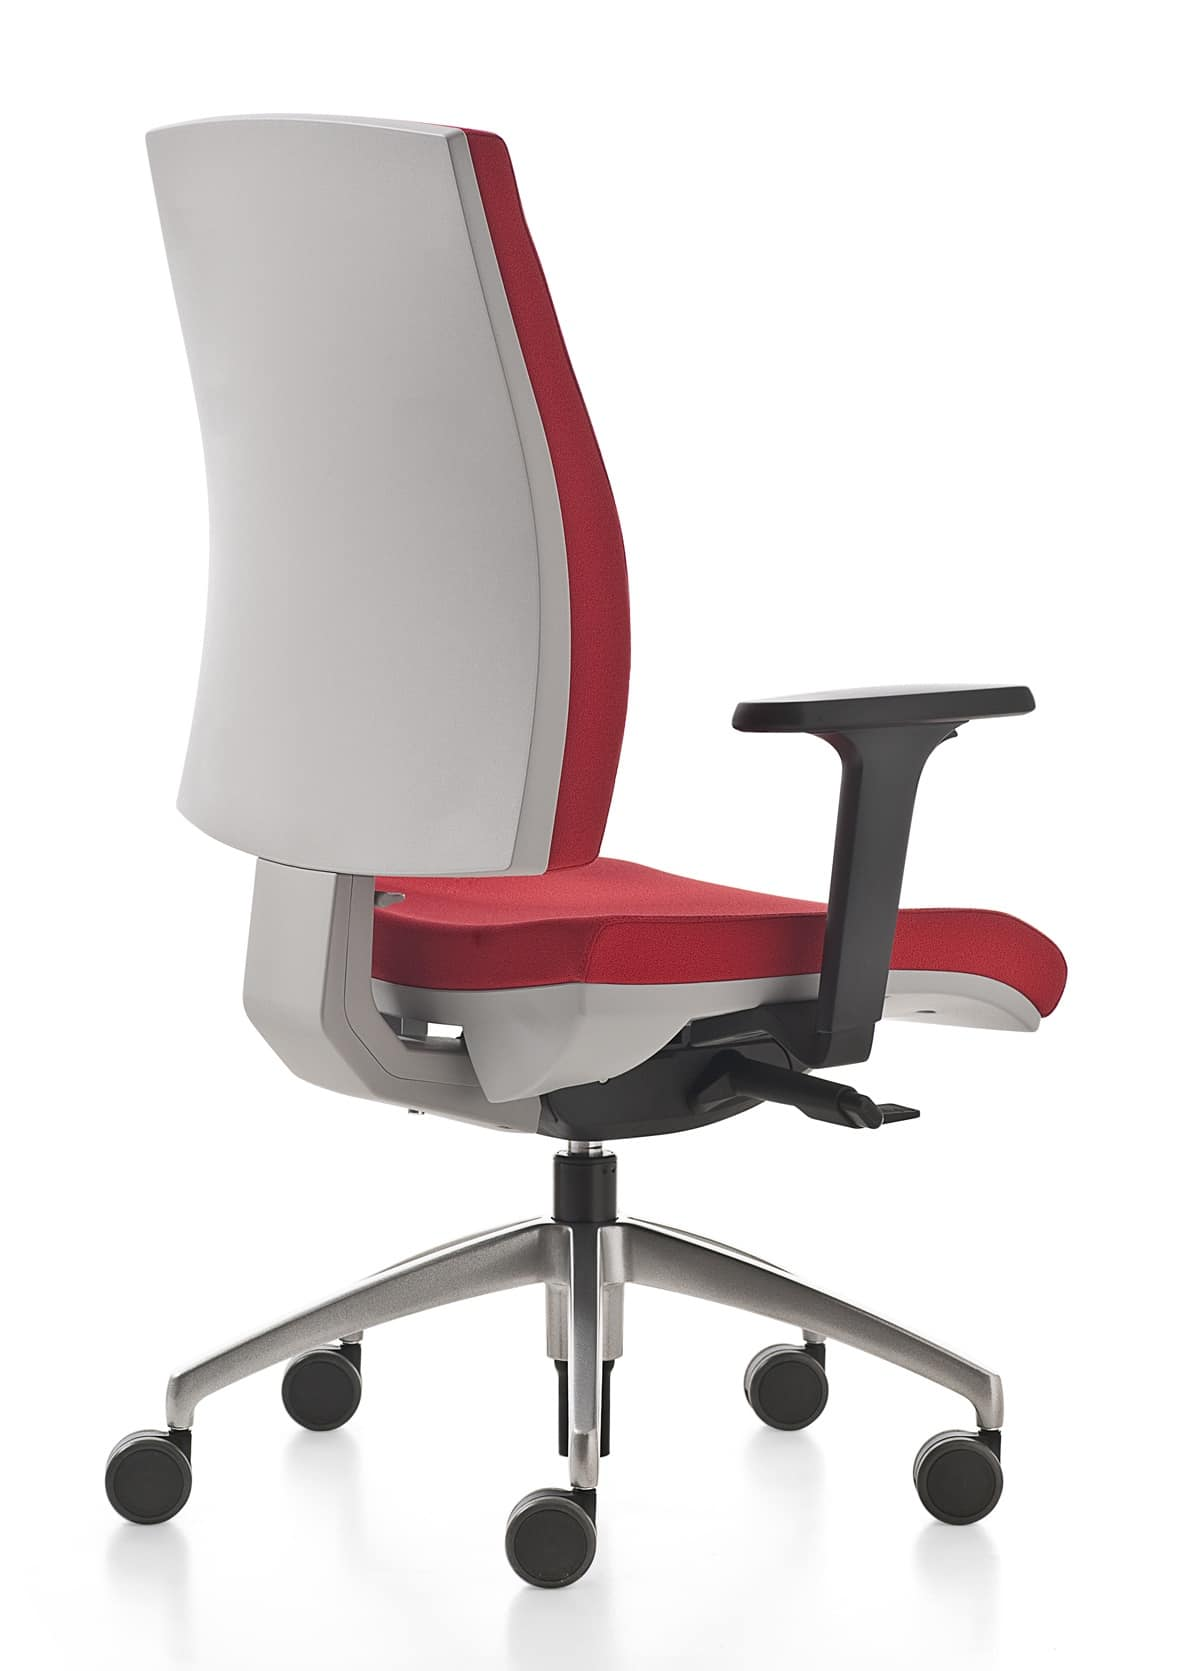 Adjustable Desk Chair Without Wheels Swivel Office Chair With Adjustable Lumbar Support